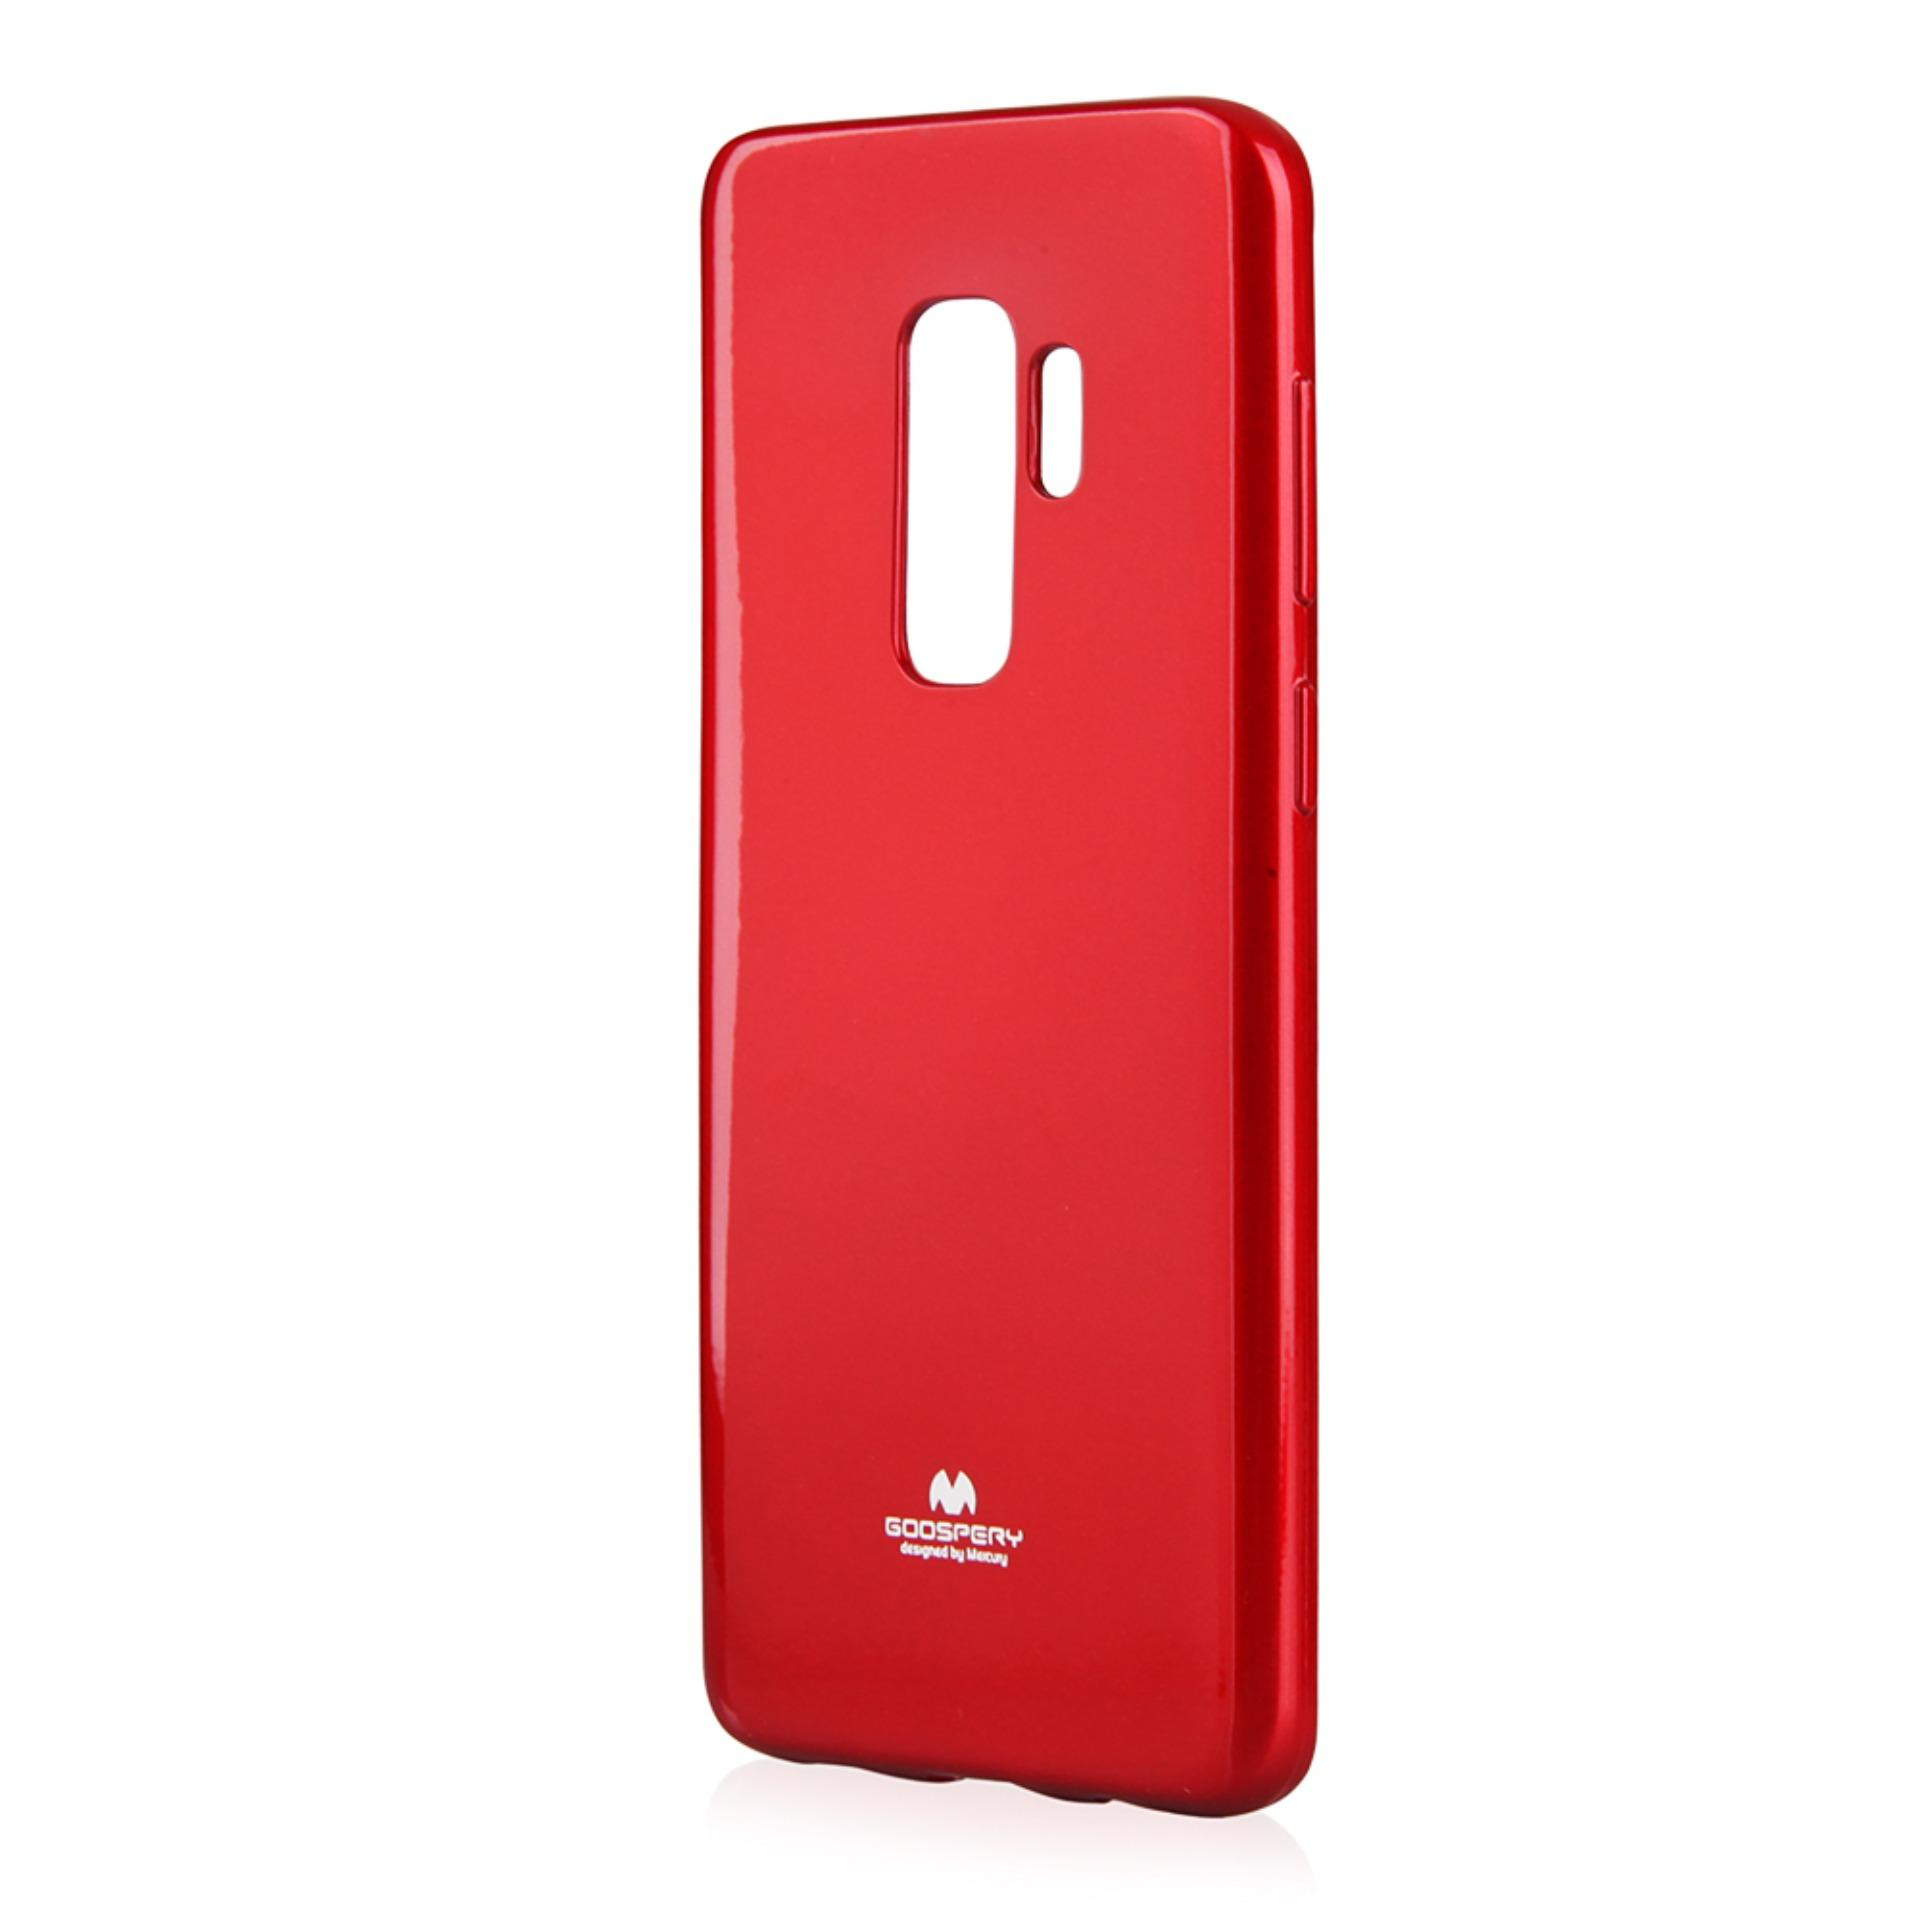 Digibabe Philippines Price List Phone Cases Screen Goospery Samsung Galaxy S9 New Bumper X Case Black E514 Heather Gal Plus Red